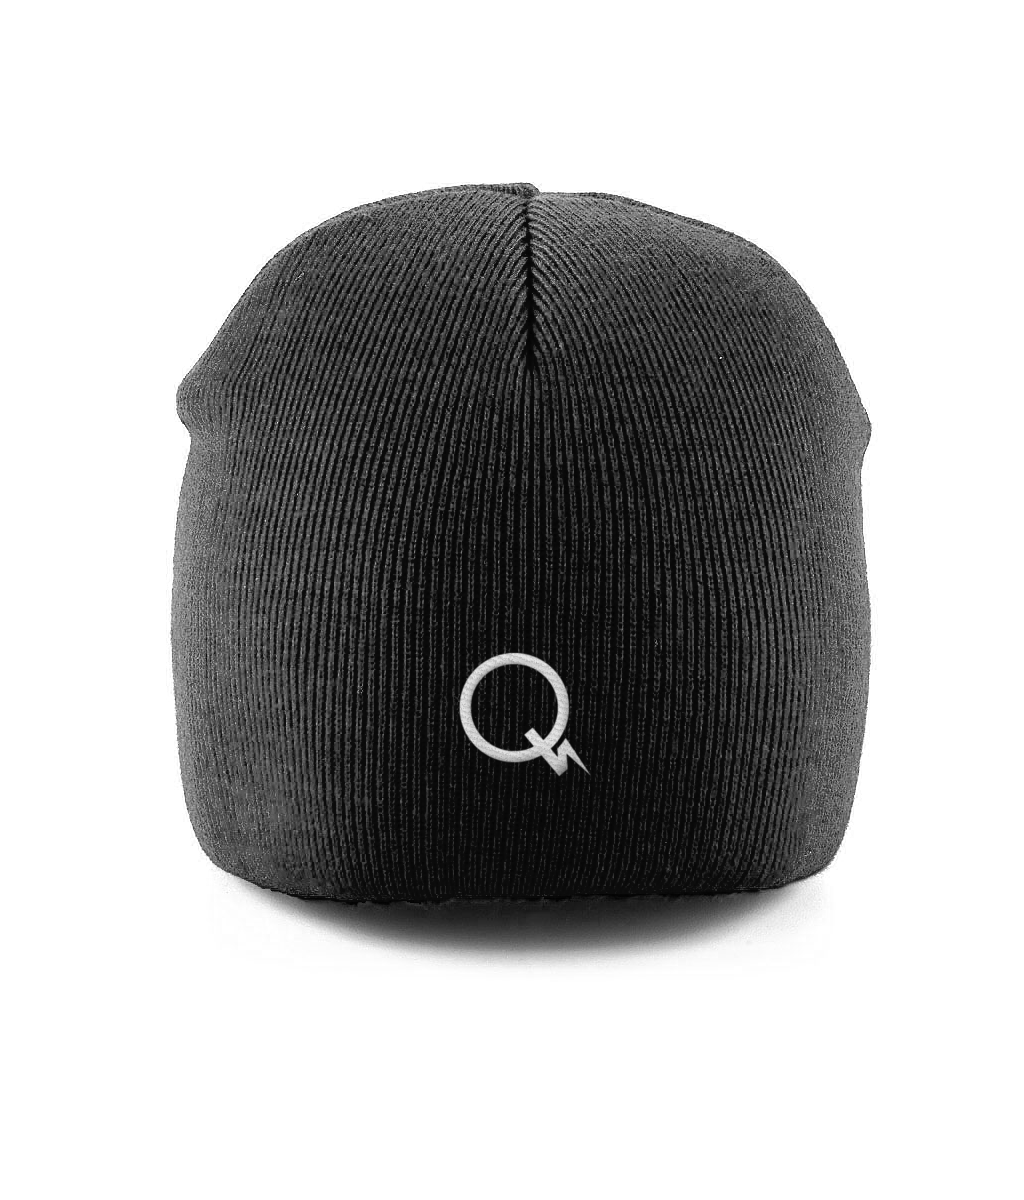 Quiet Thunder Black Beanie